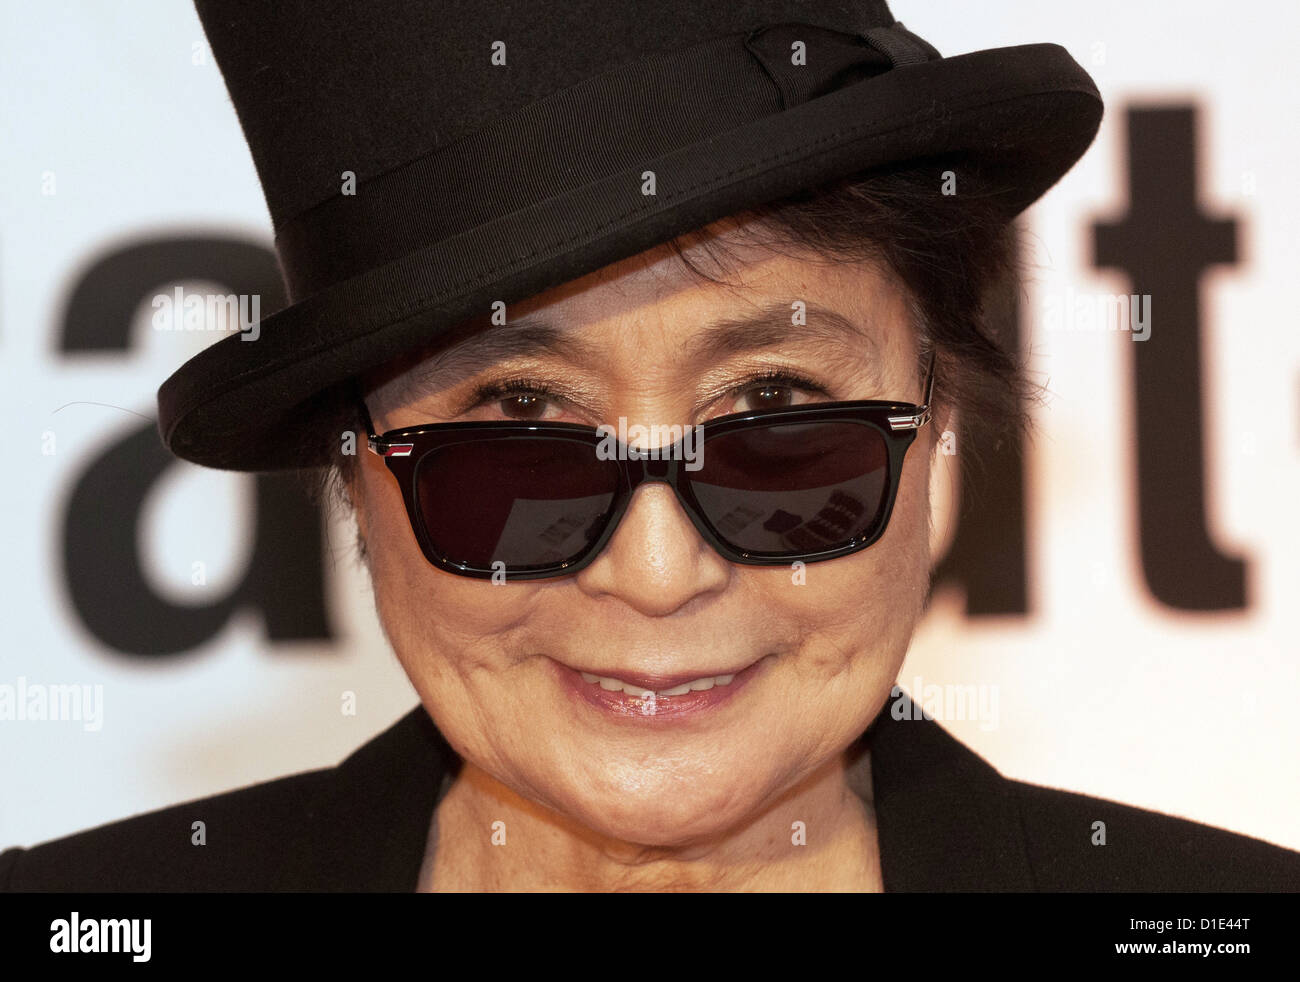 Human rights activist and artist Yoko Ono receives the Dr Rainer Hildebrandt Medal 2012 in Berlin, Germany, 14 December - Stock Image